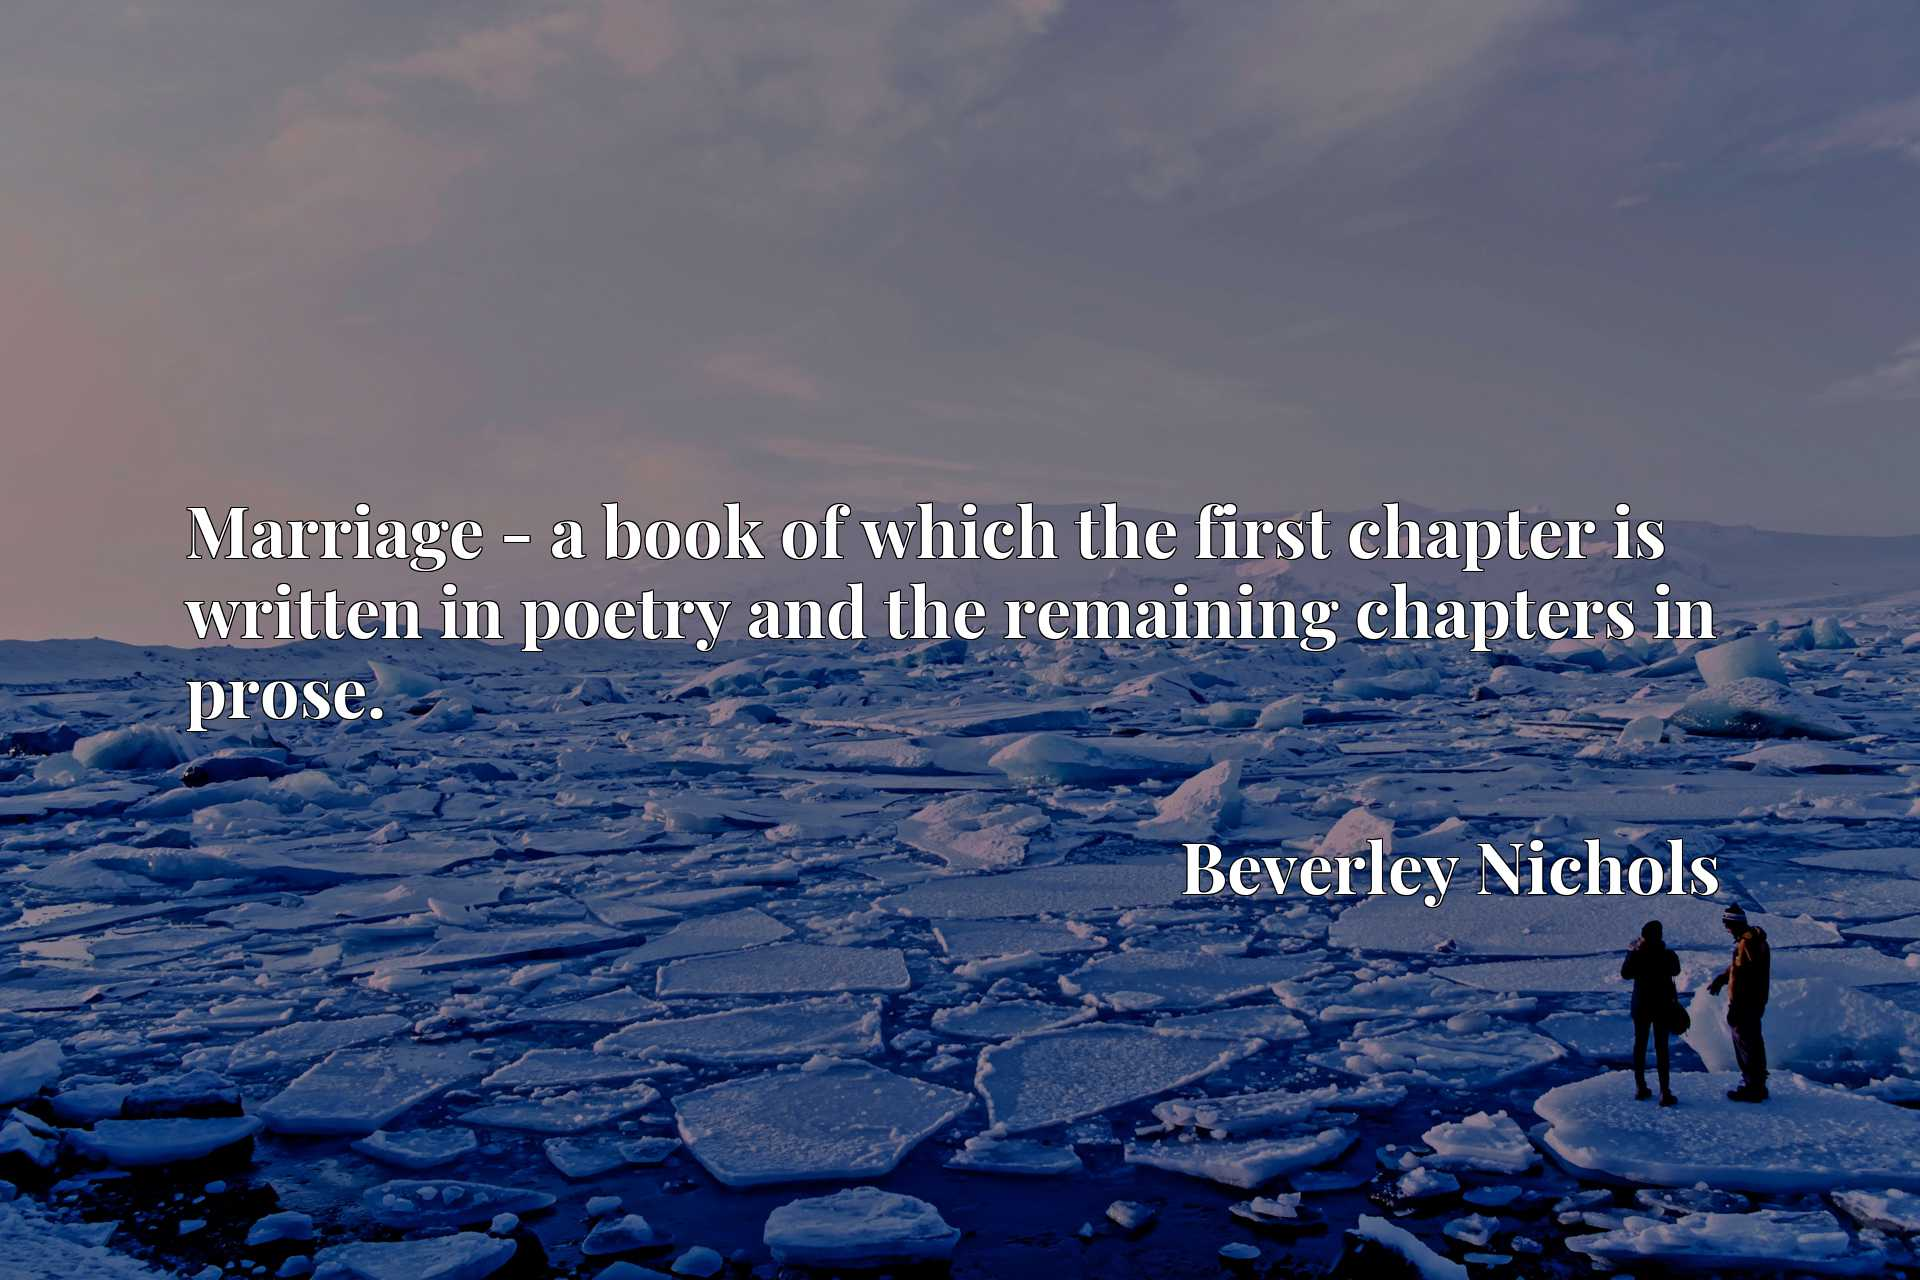 Quote Picture :Marriage - a book of which the first chapter is written in poetry and the remaining chapters in prose.